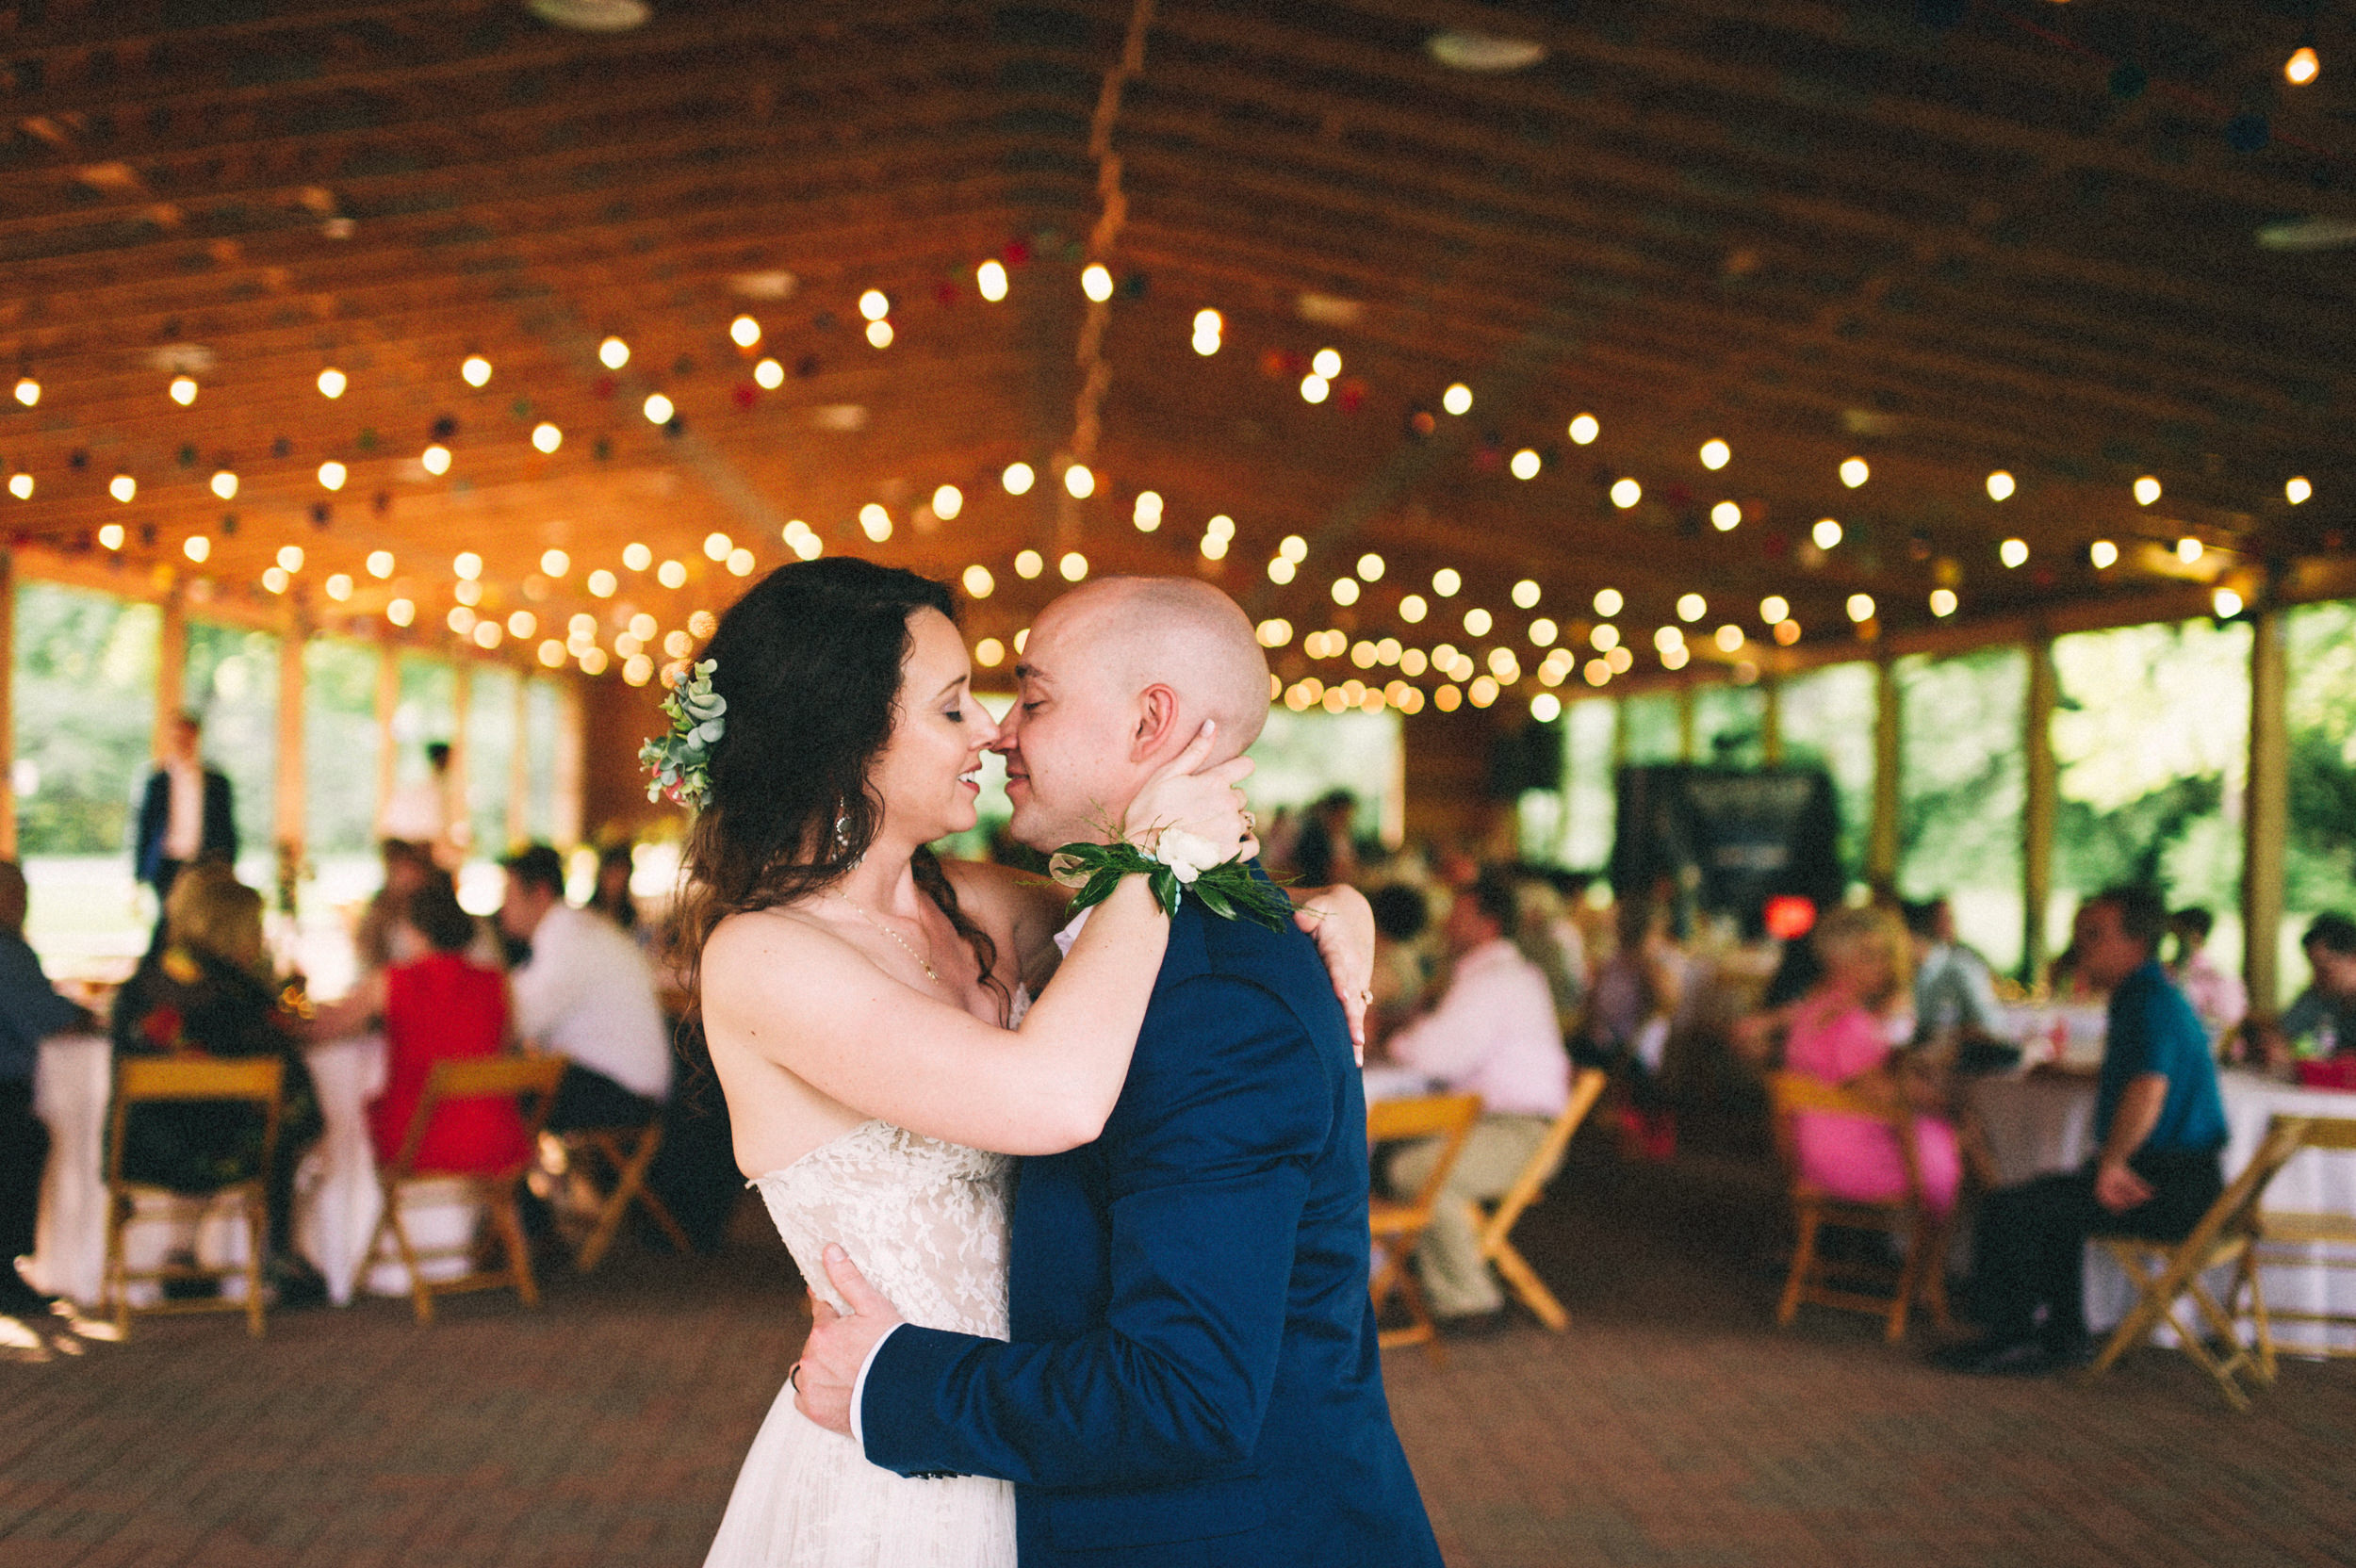 Cassie + Drew // Colorful Farmington Wedding // Louisville, Kentucky Photographer // Sarah Katherine Davis Photography